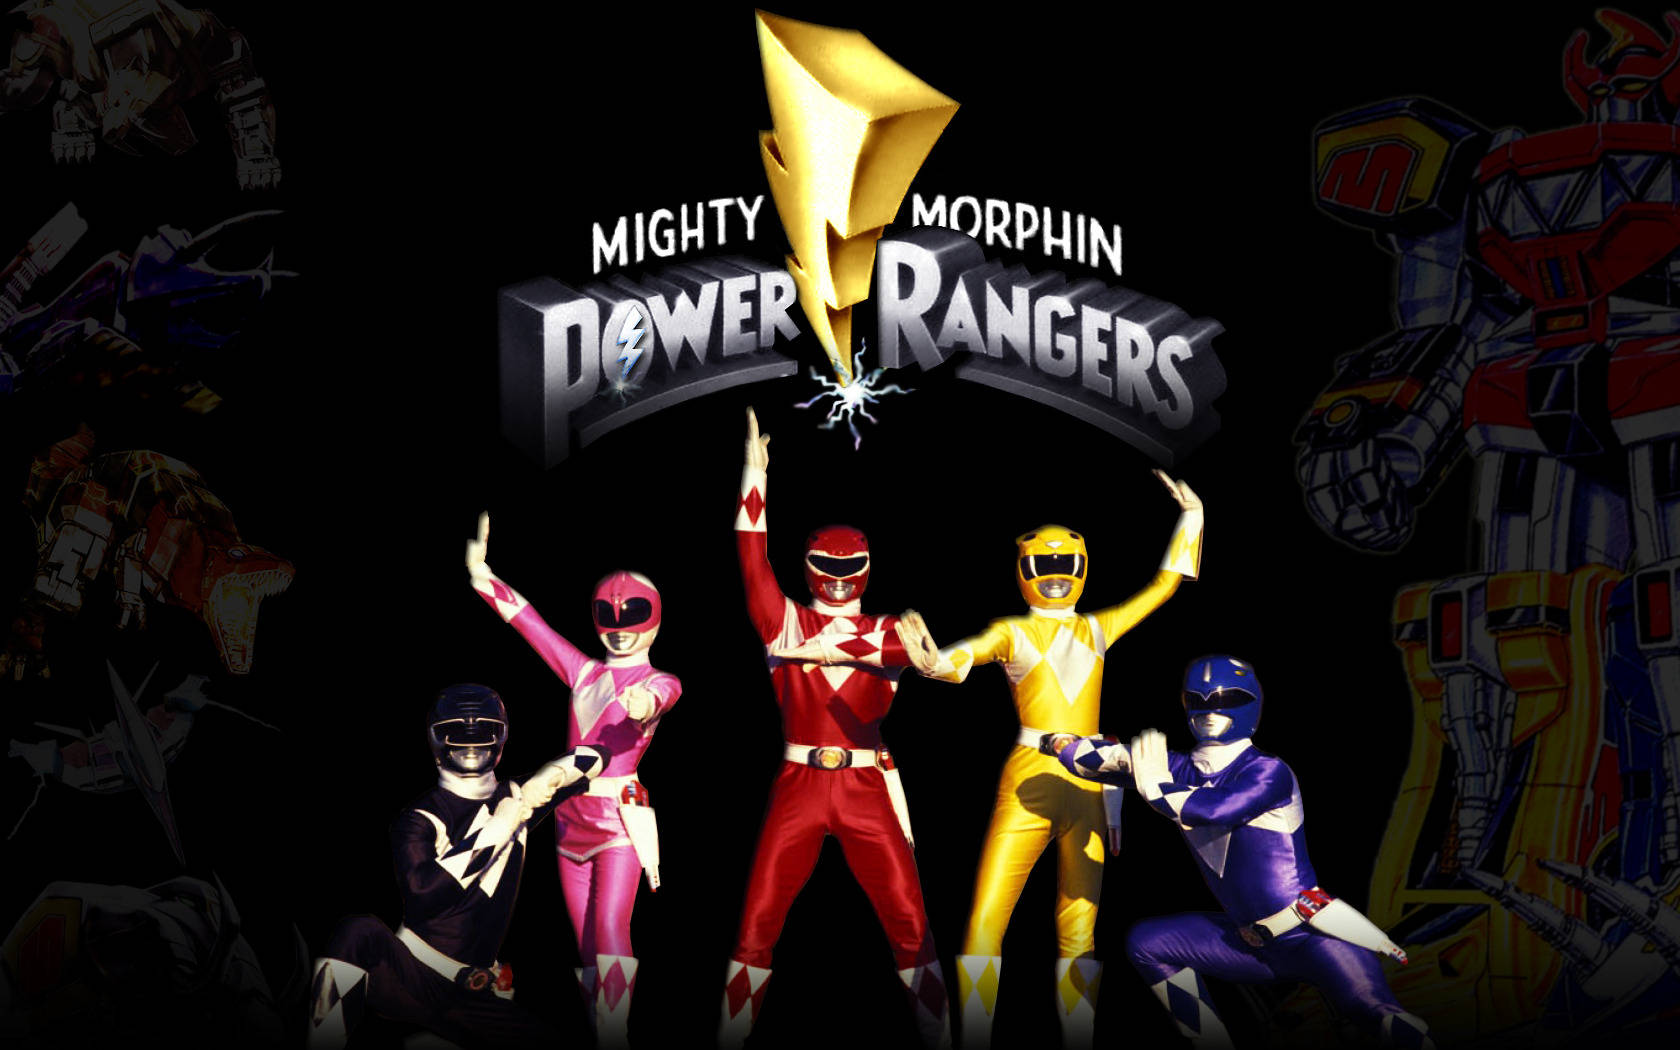 Power Rangers Wallpaper #198549 - Resolution 1680x1050 px